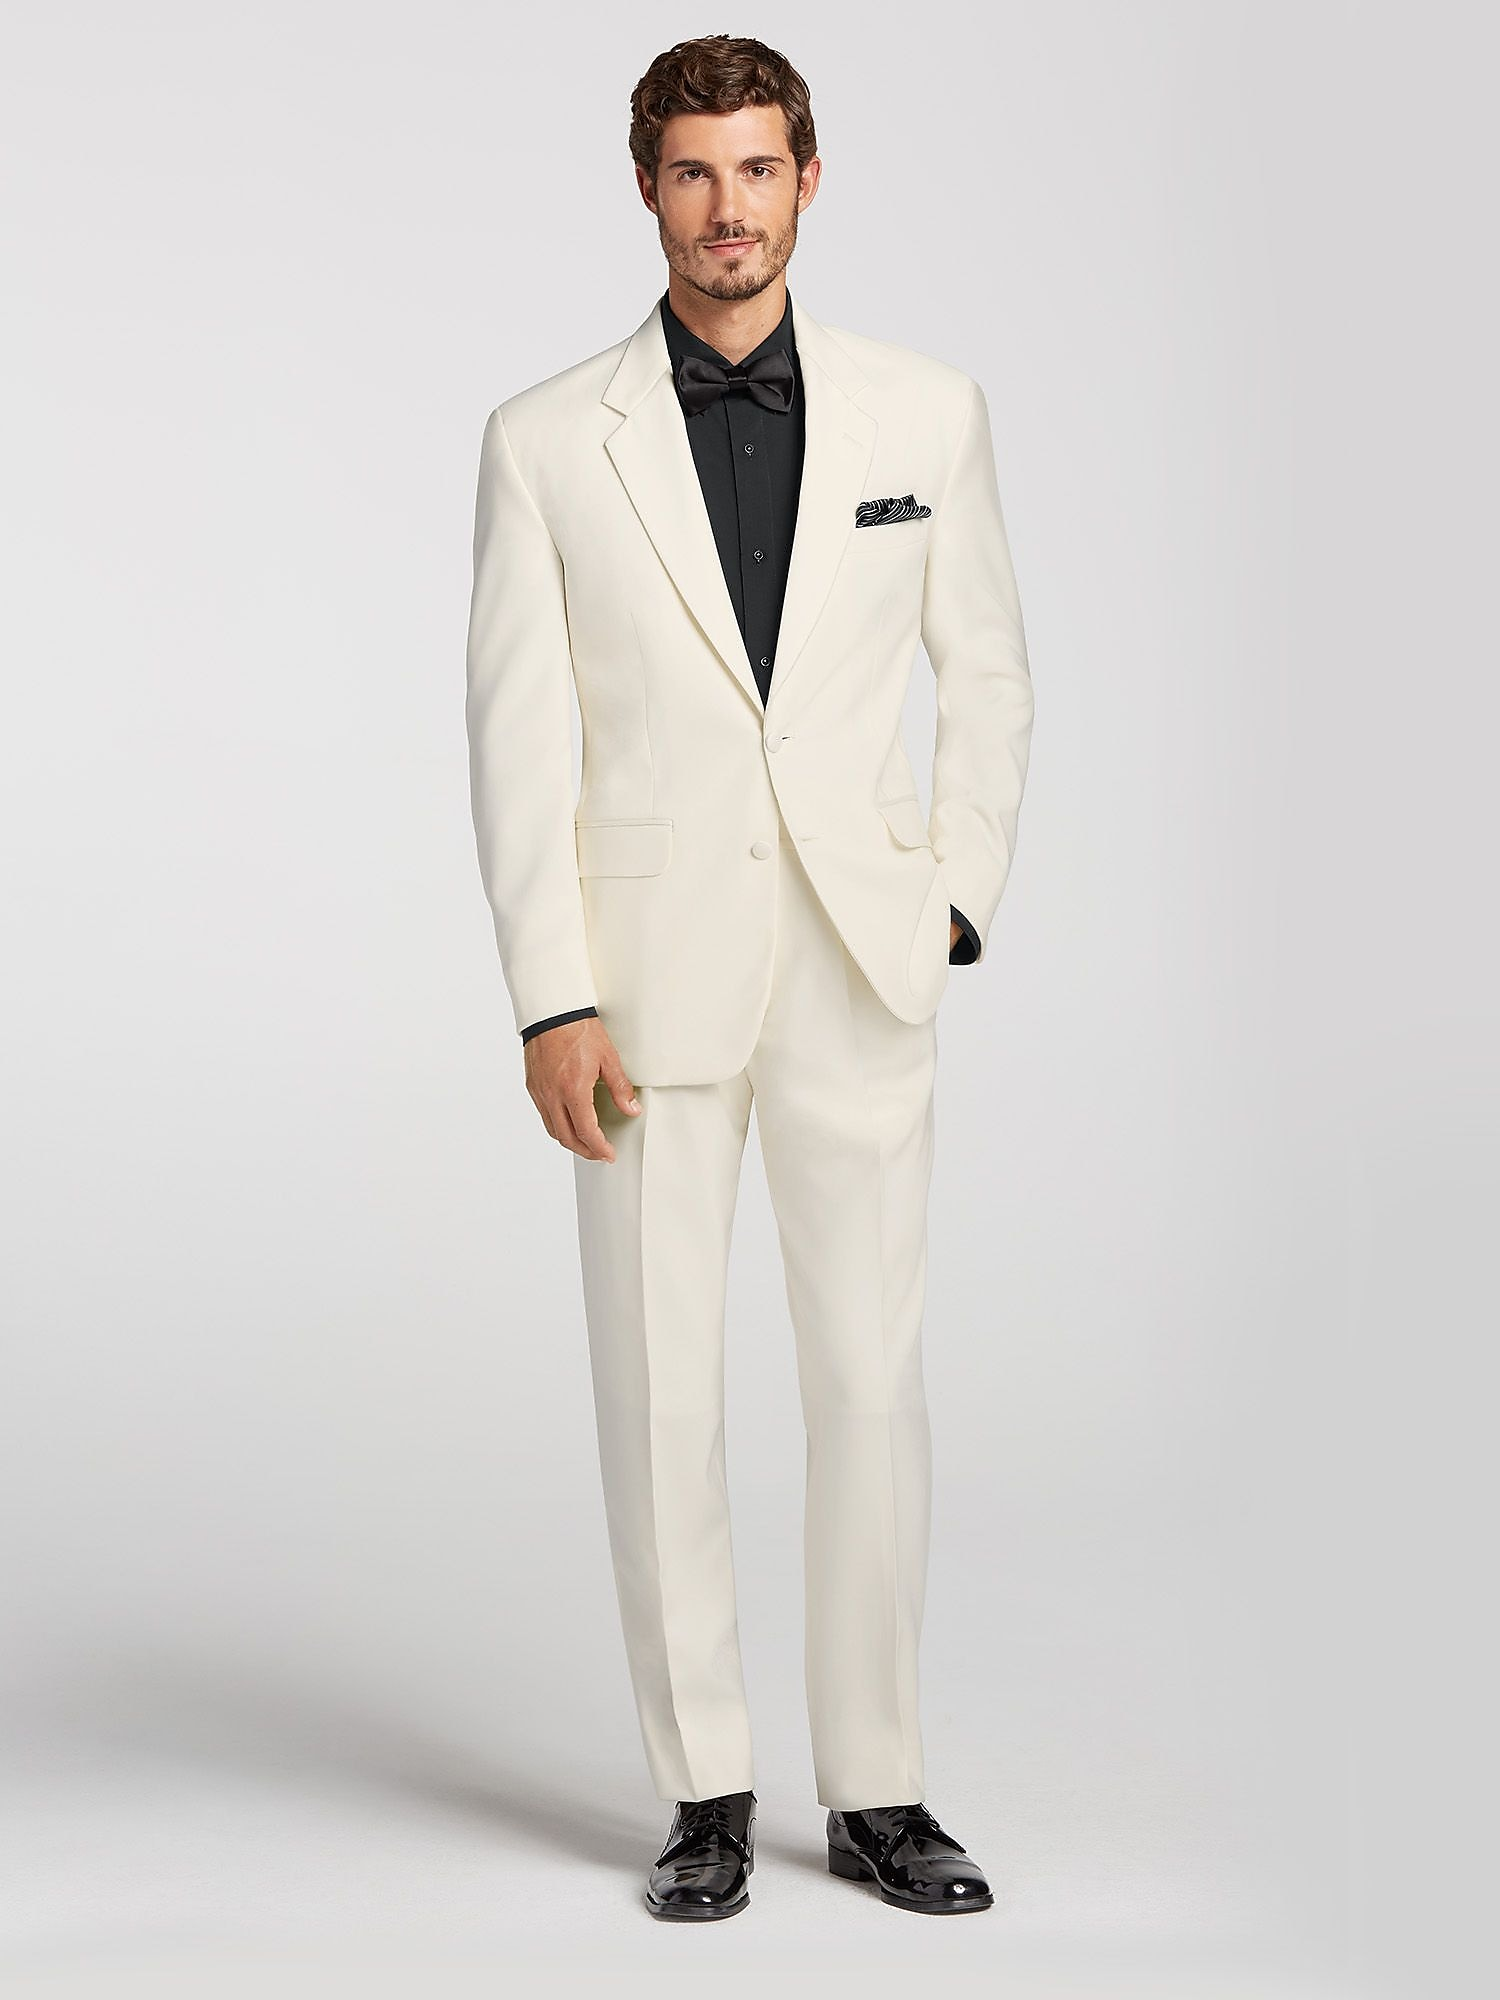 Ivory Notch Lapel Tuxedo by Joseph Feiss | Tuxedo Rental | Men\'s ...